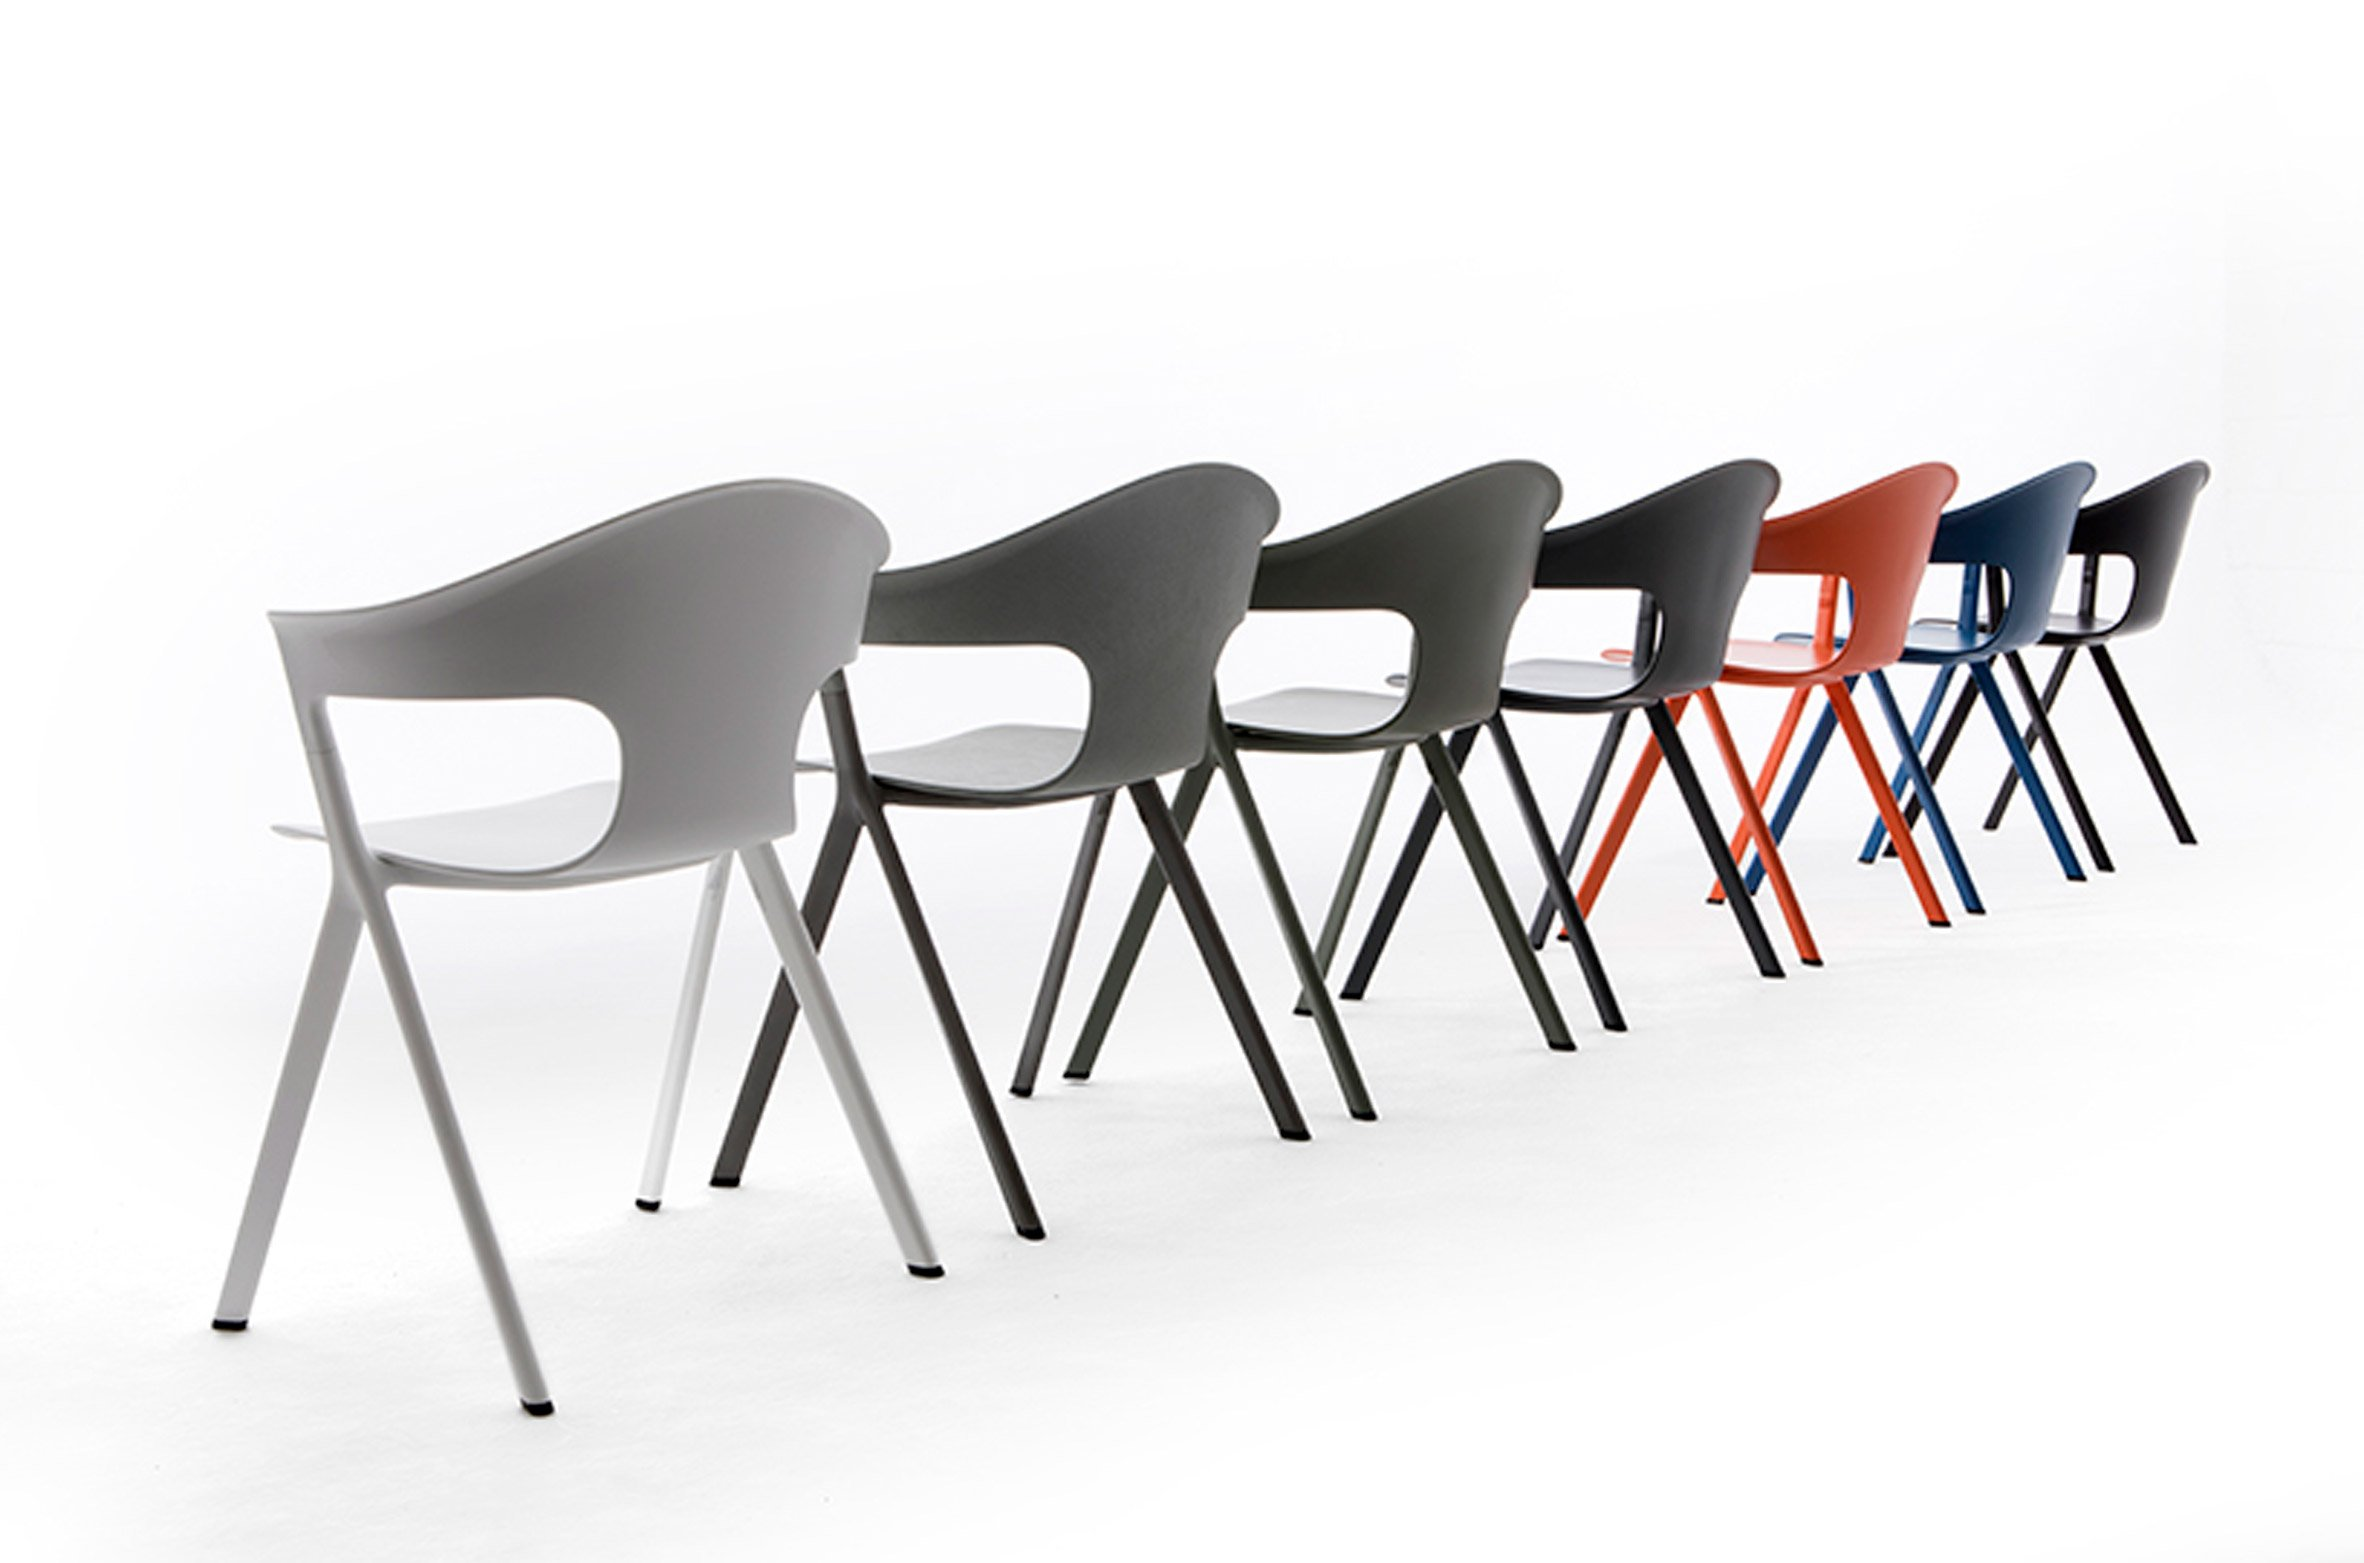 Uses Recycled Nylon From 71